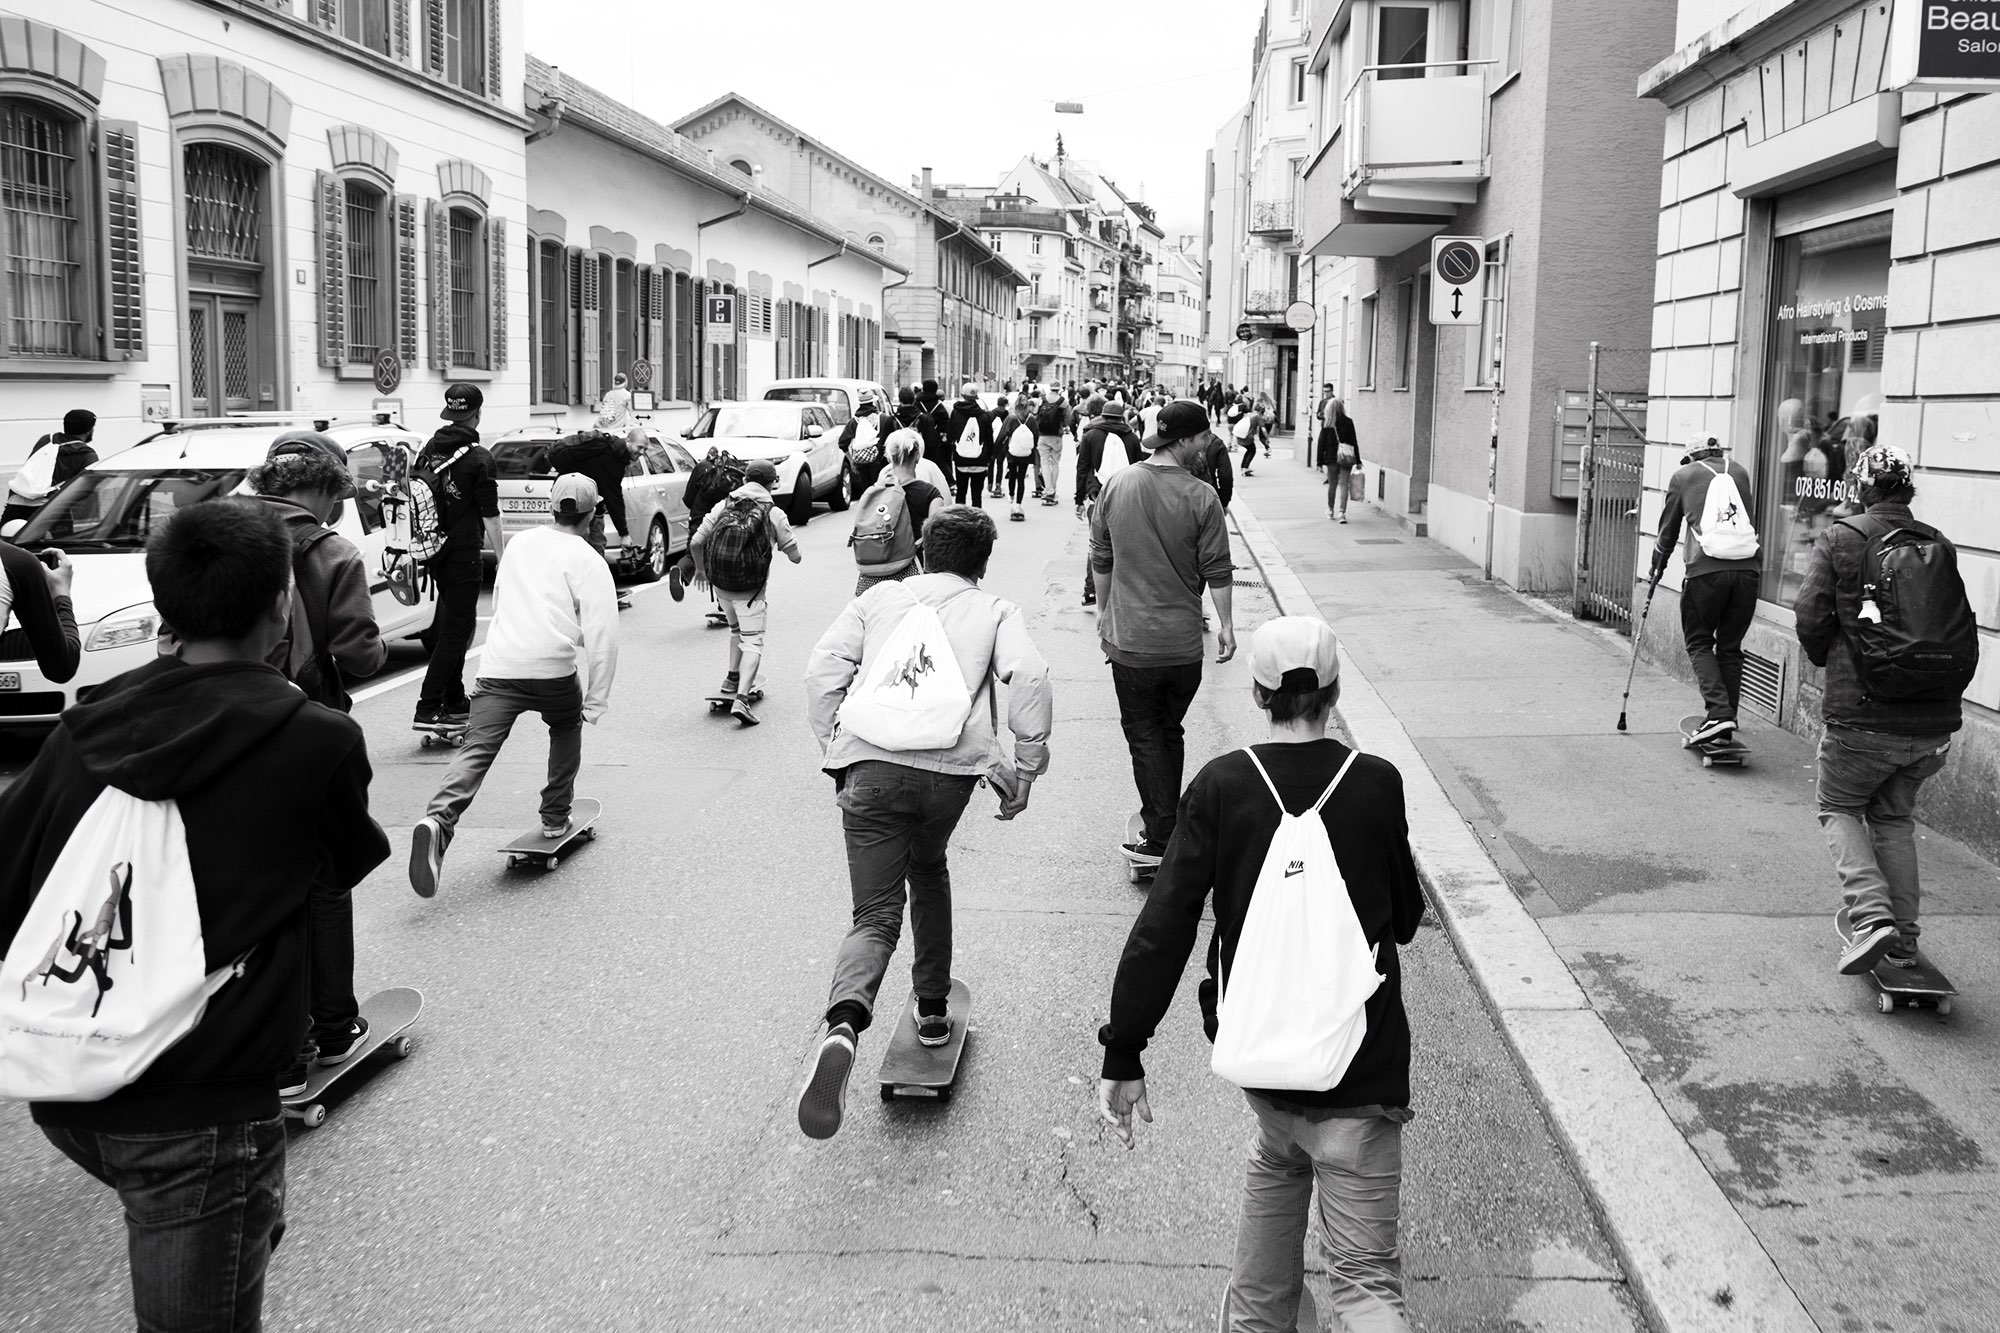 Go Skateboarding Day 2015, Zürich | fine lines Marketing